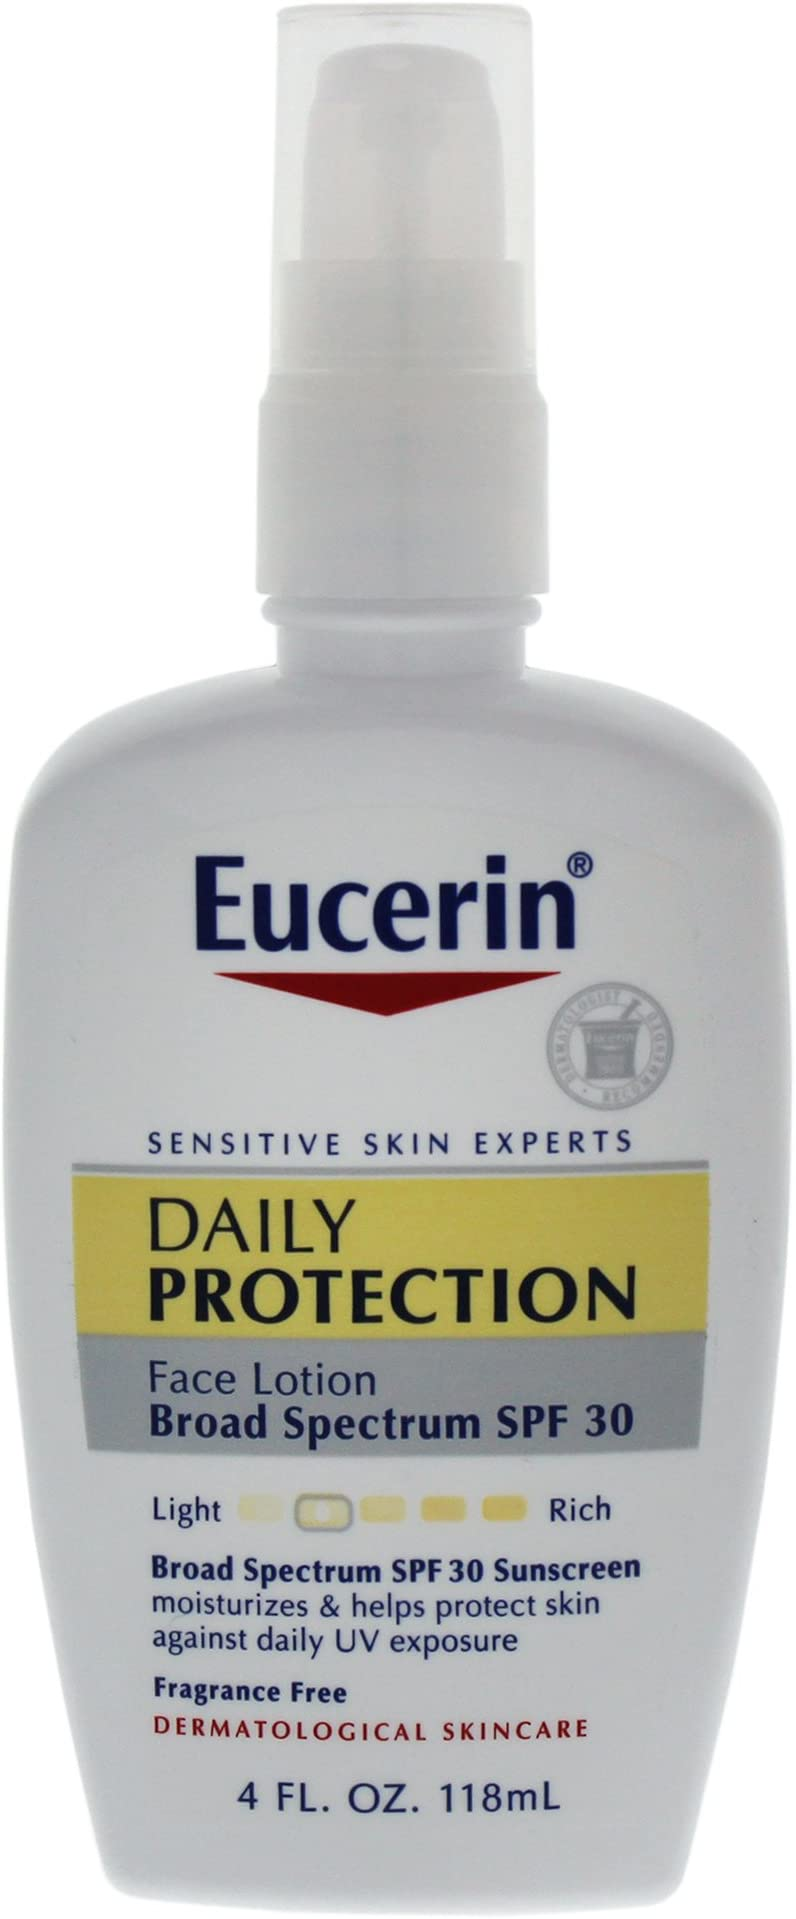 Eucerin Daily Protection Moisturizing Face Lotion, SPF 30 4 fl oz (118 ml) (Pack of 2)